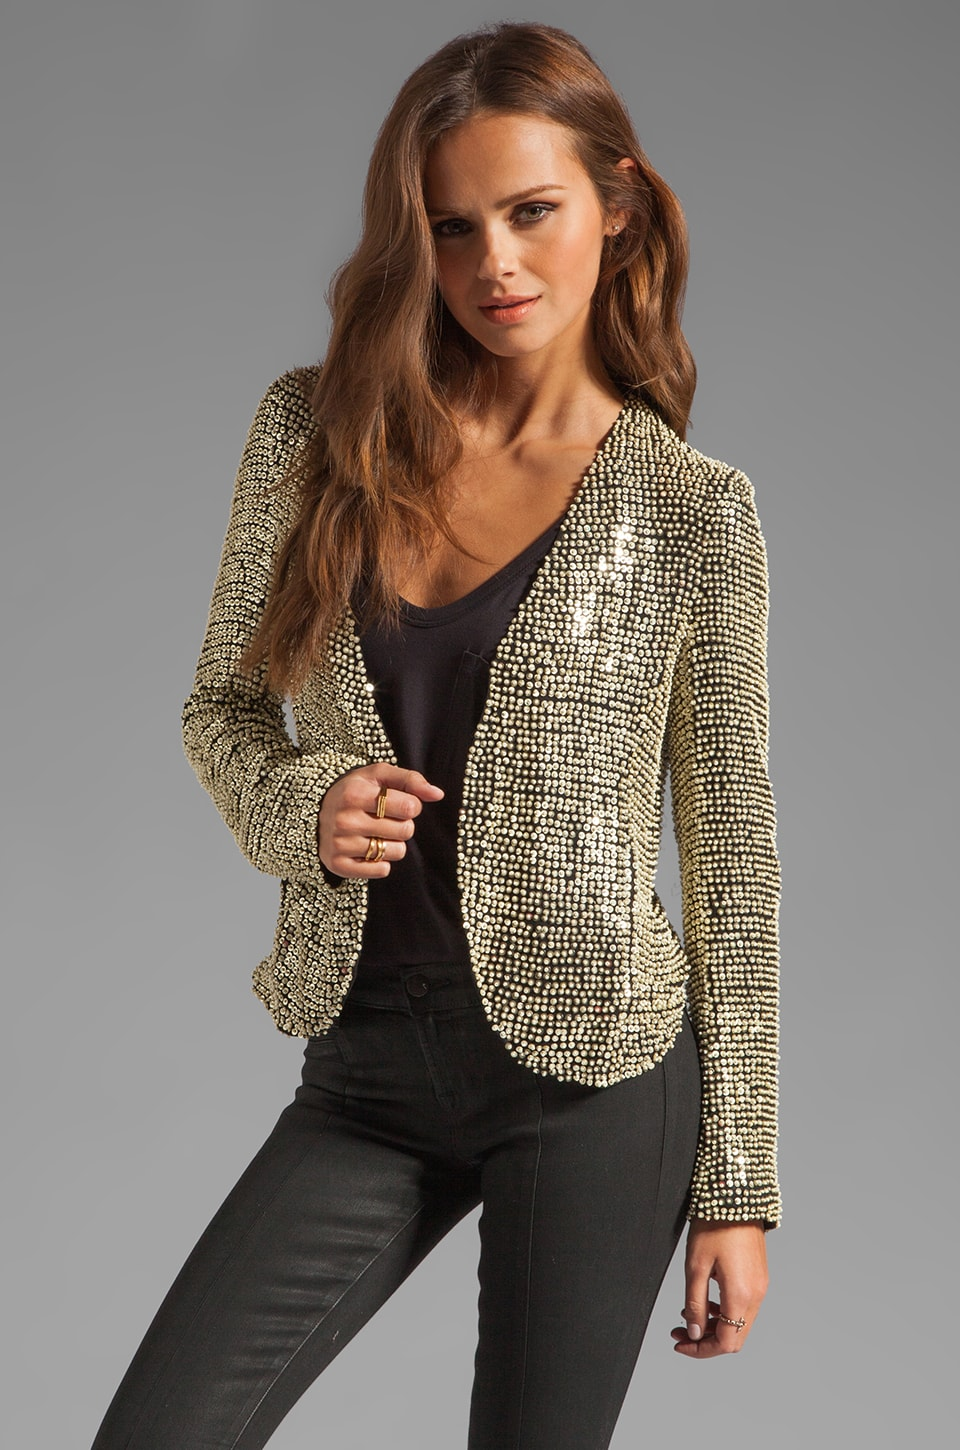 Parker Ivory Seed Sequin Jacket in Black